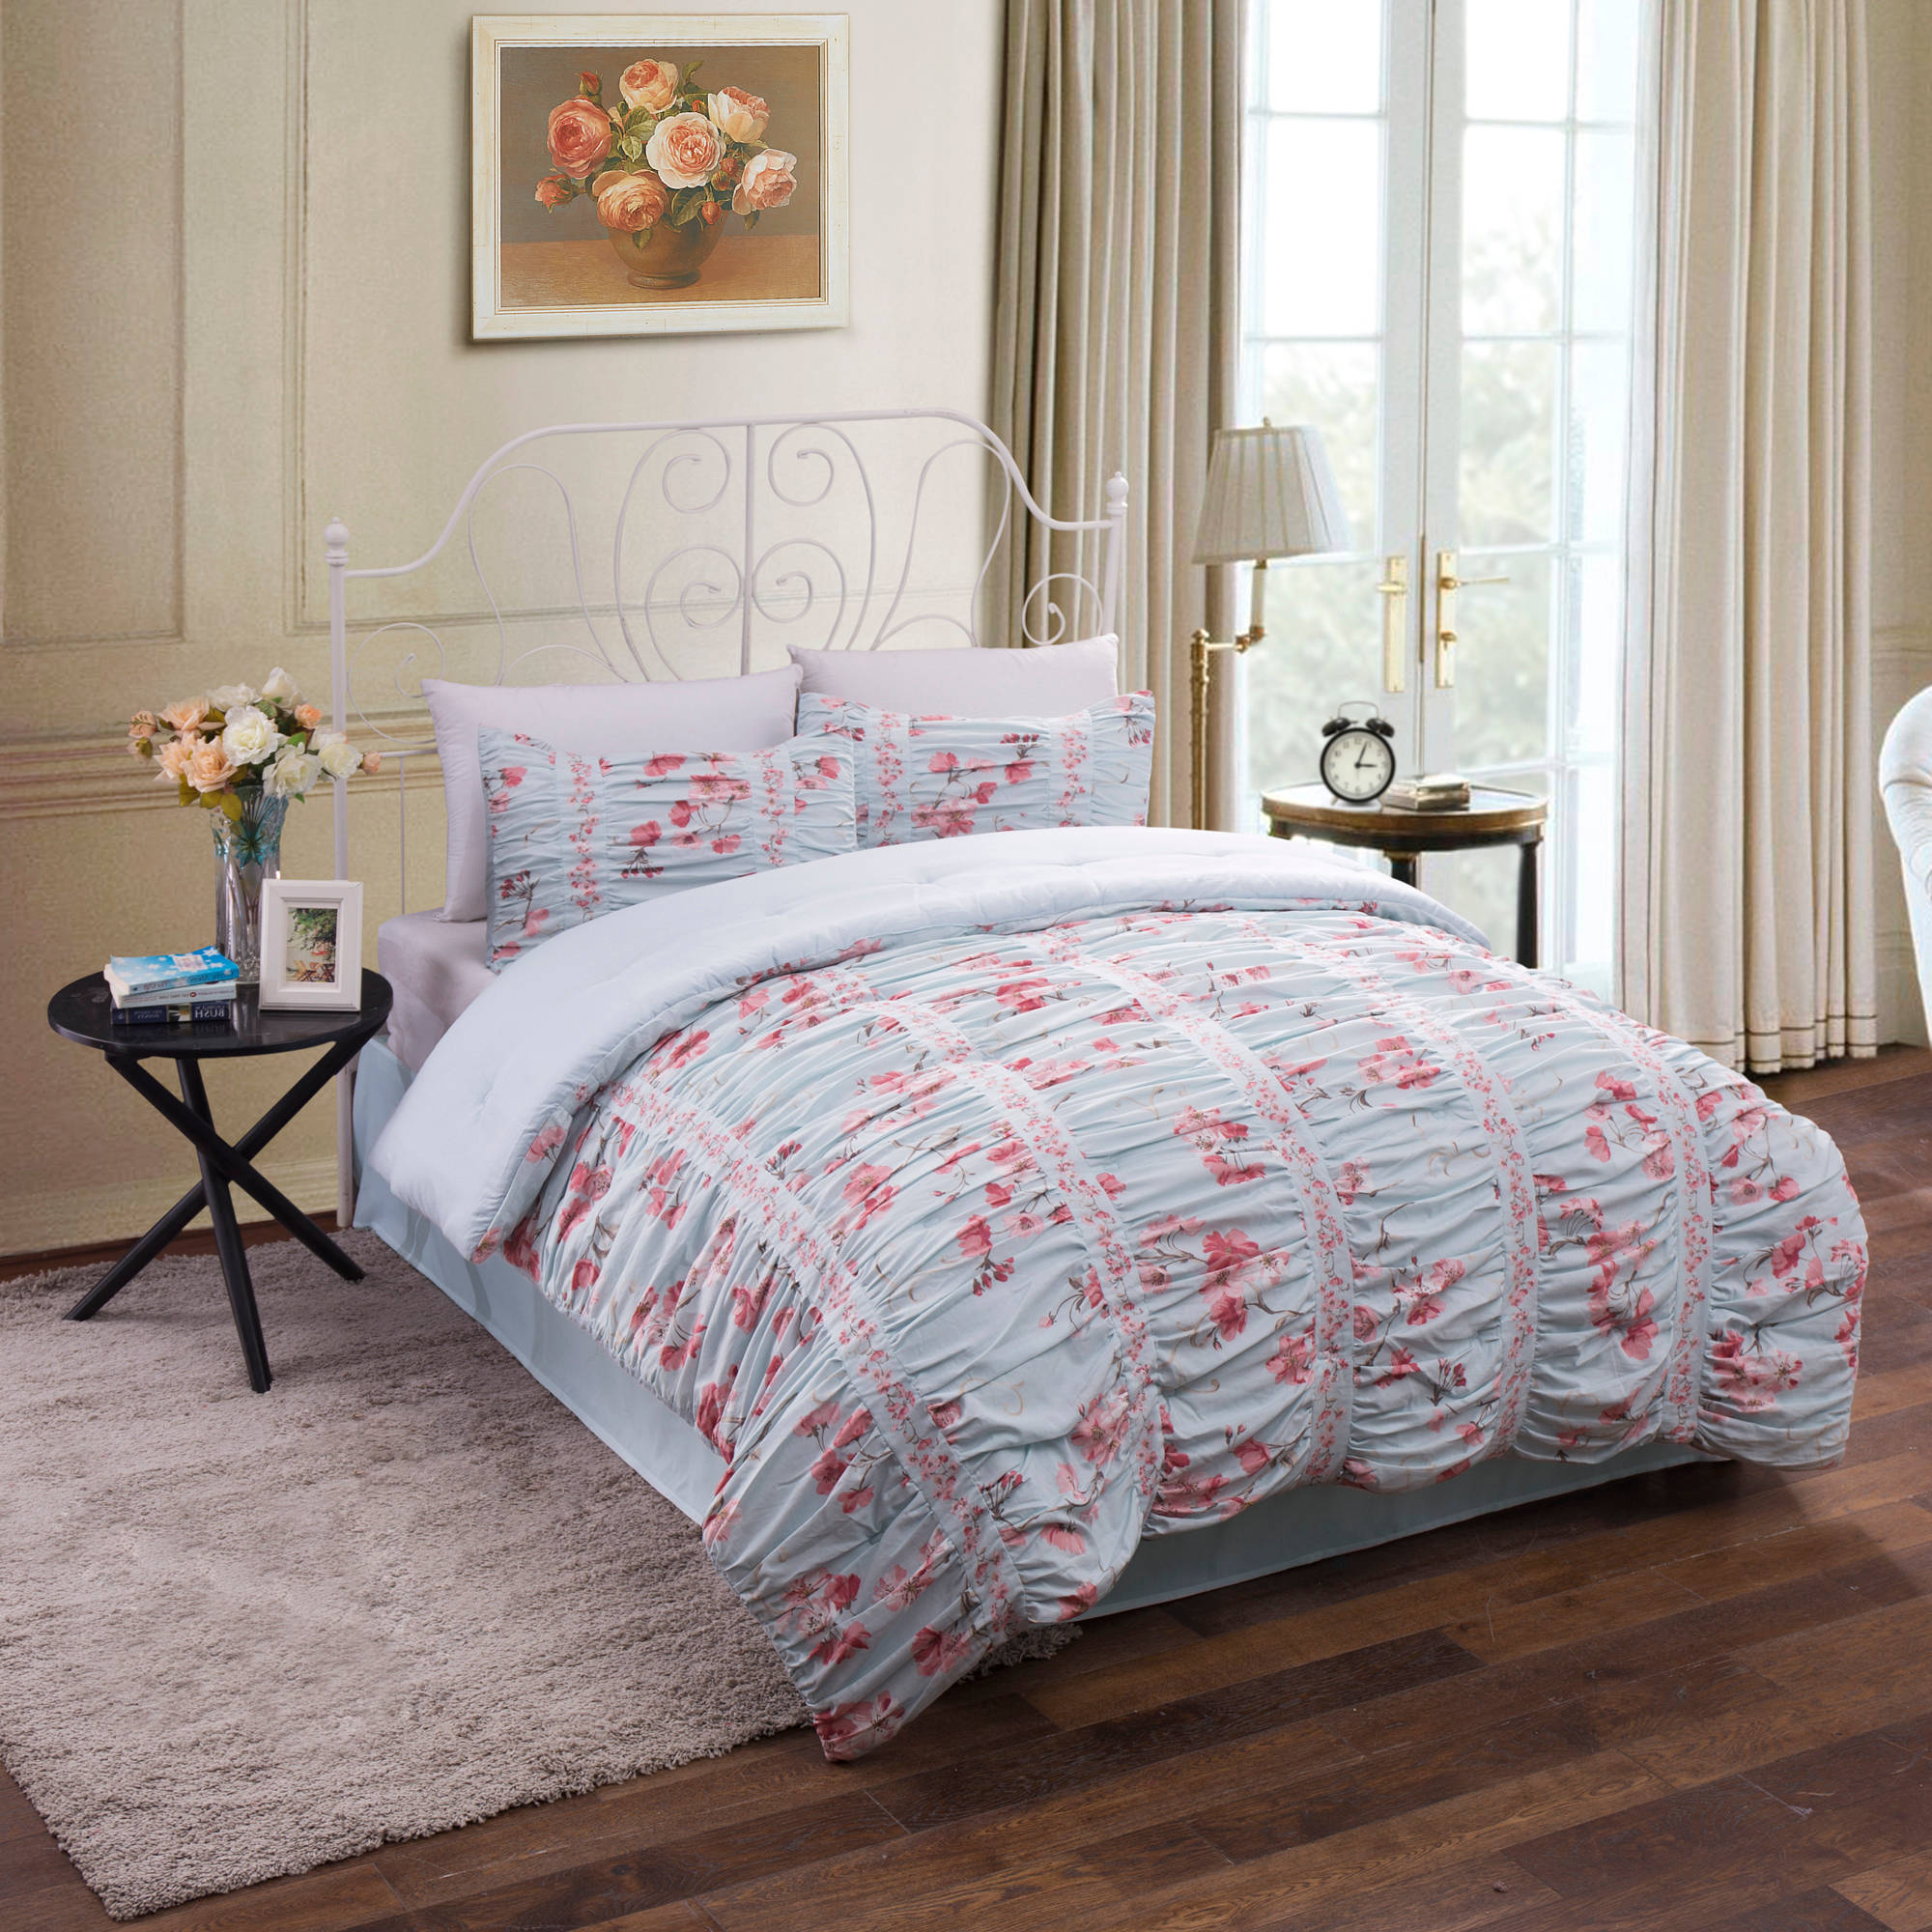 Ruched Floral Cotton Bedding Comforter Set